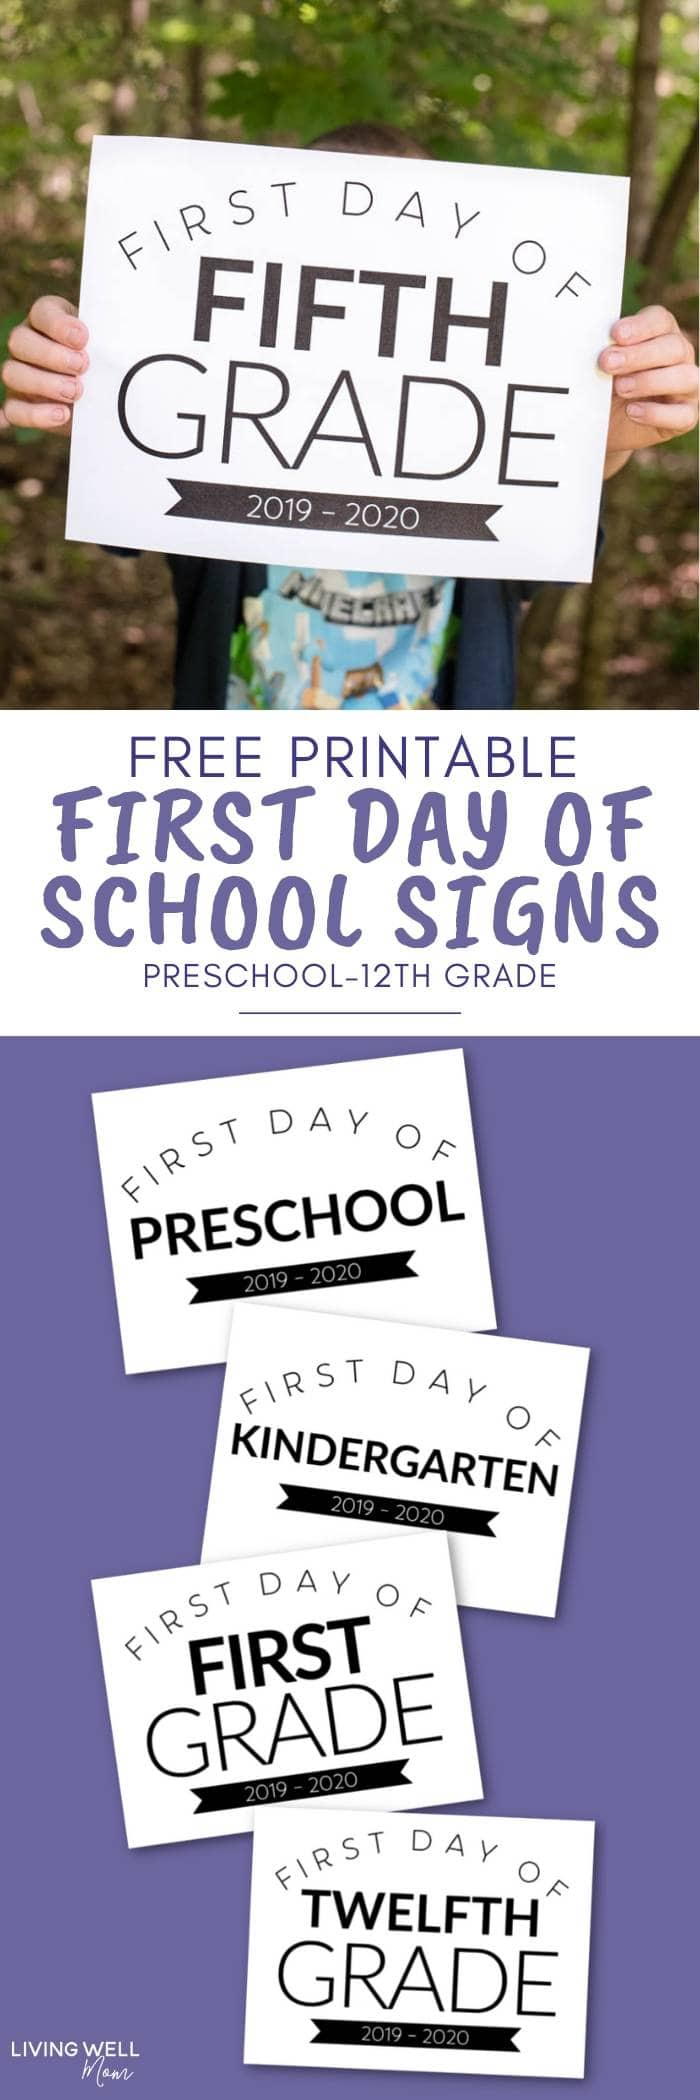 photo about First Day of School Printable Sign named No cost Printable To start with Working day of College Symptoms for All Grades